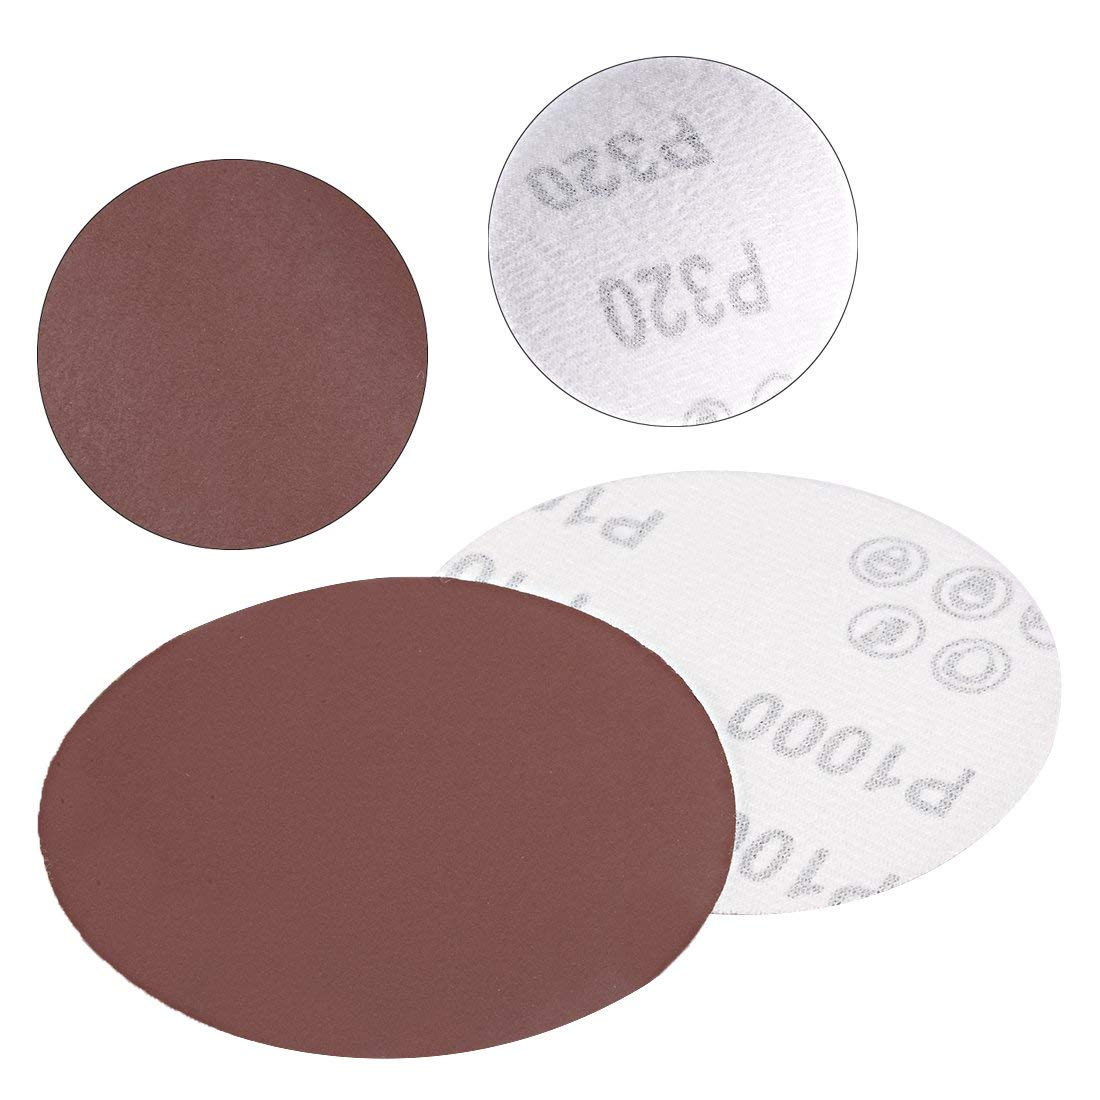 50Pcs 4-inch hook and loop sanding disc 1000 grained sandpaper for random orbit sander Brown